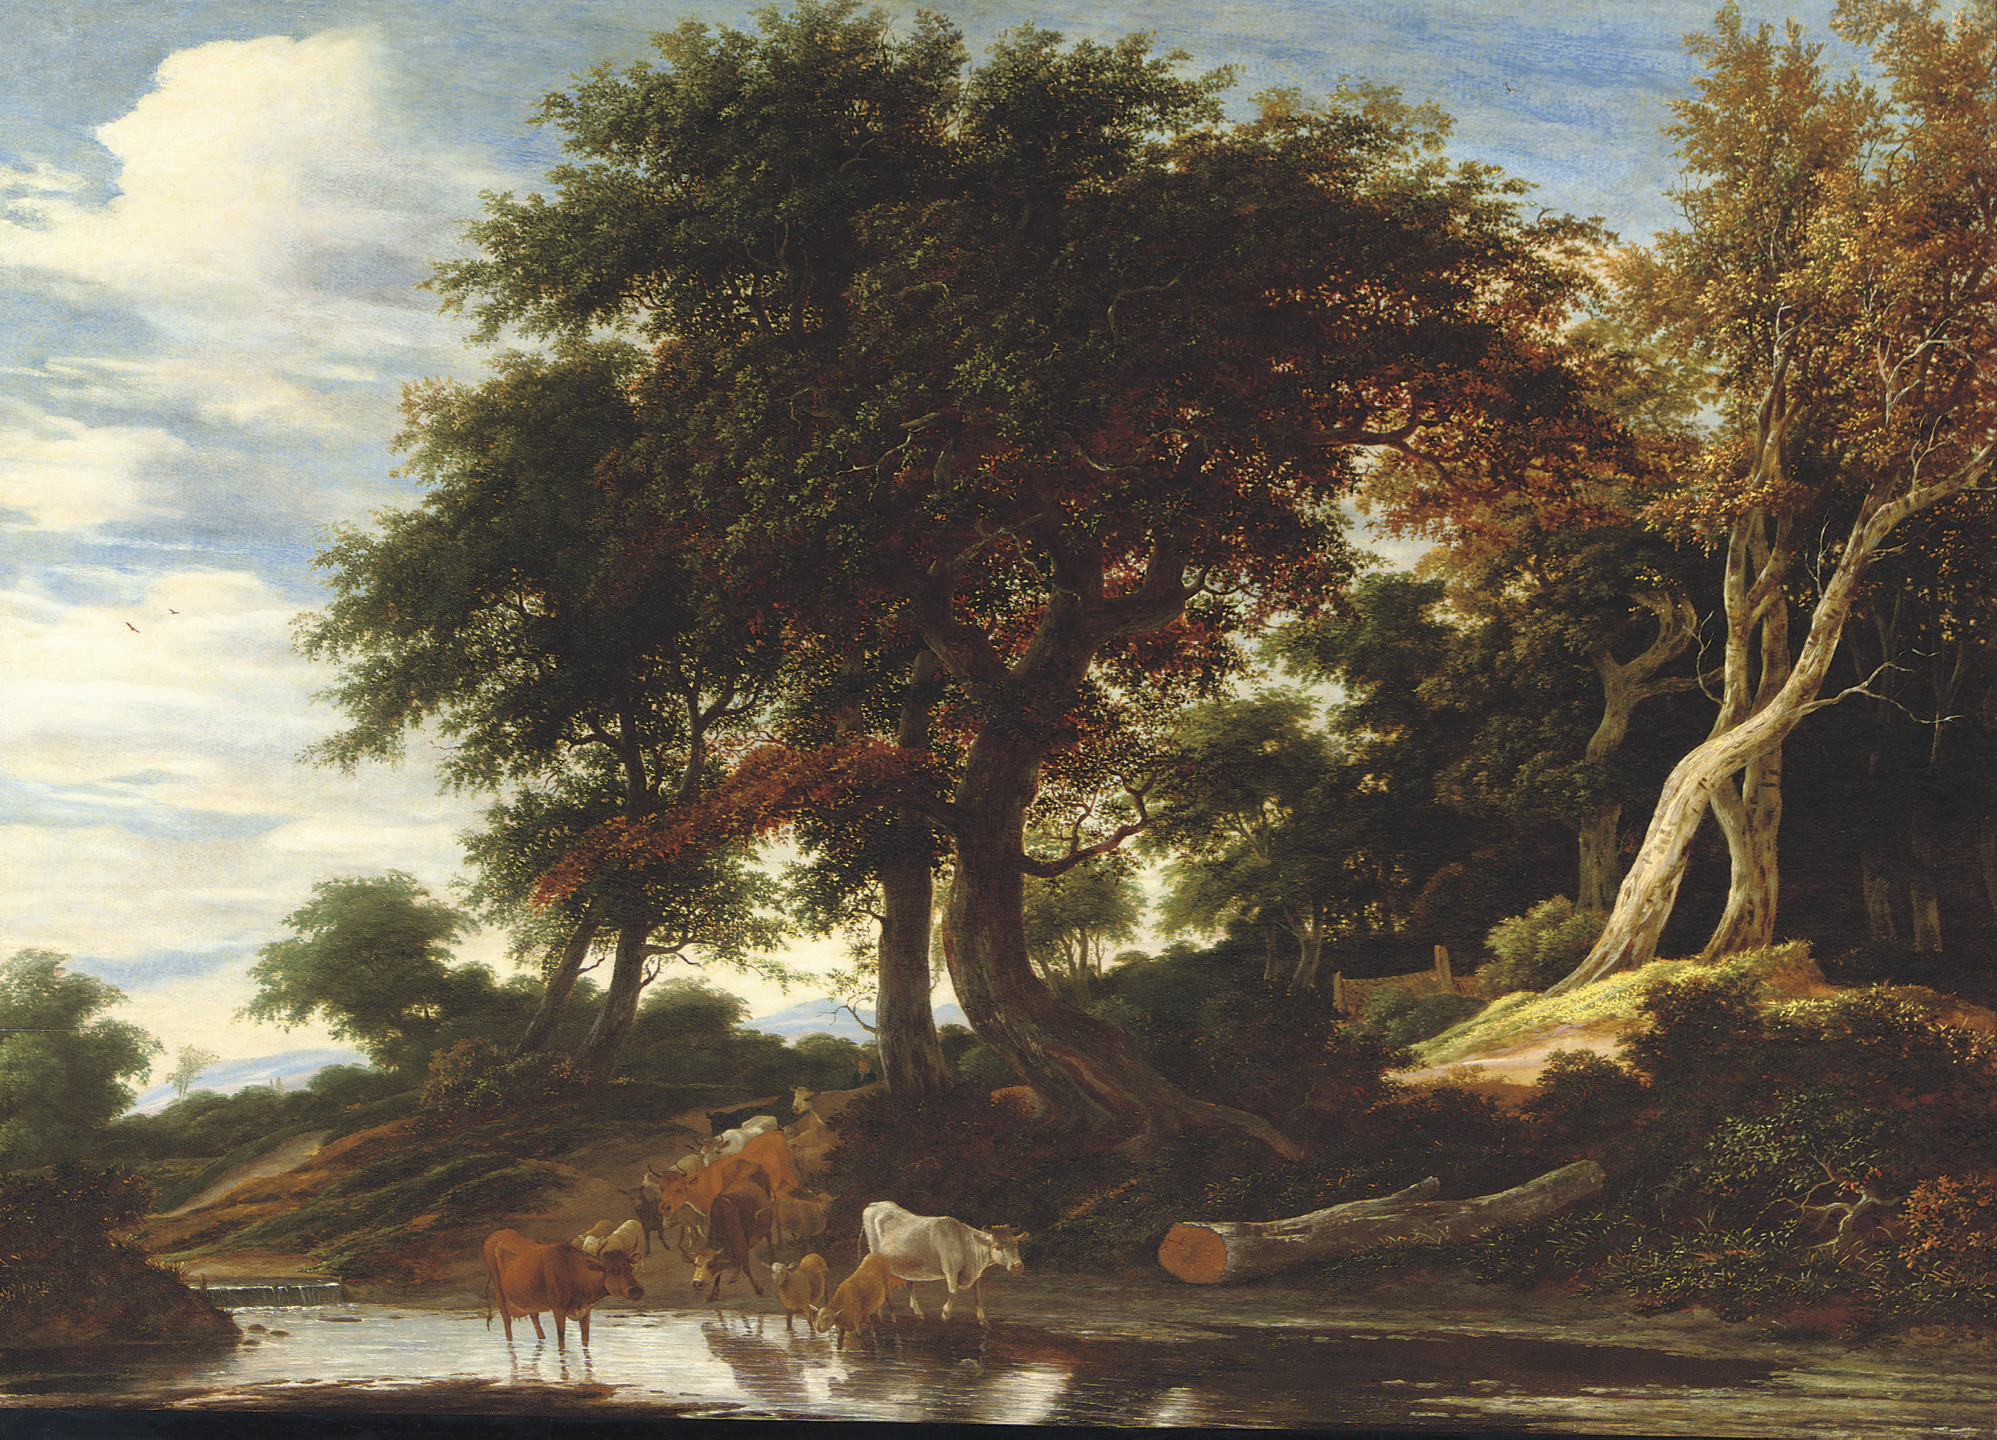 Cattle fording a stream in a wooded landscape